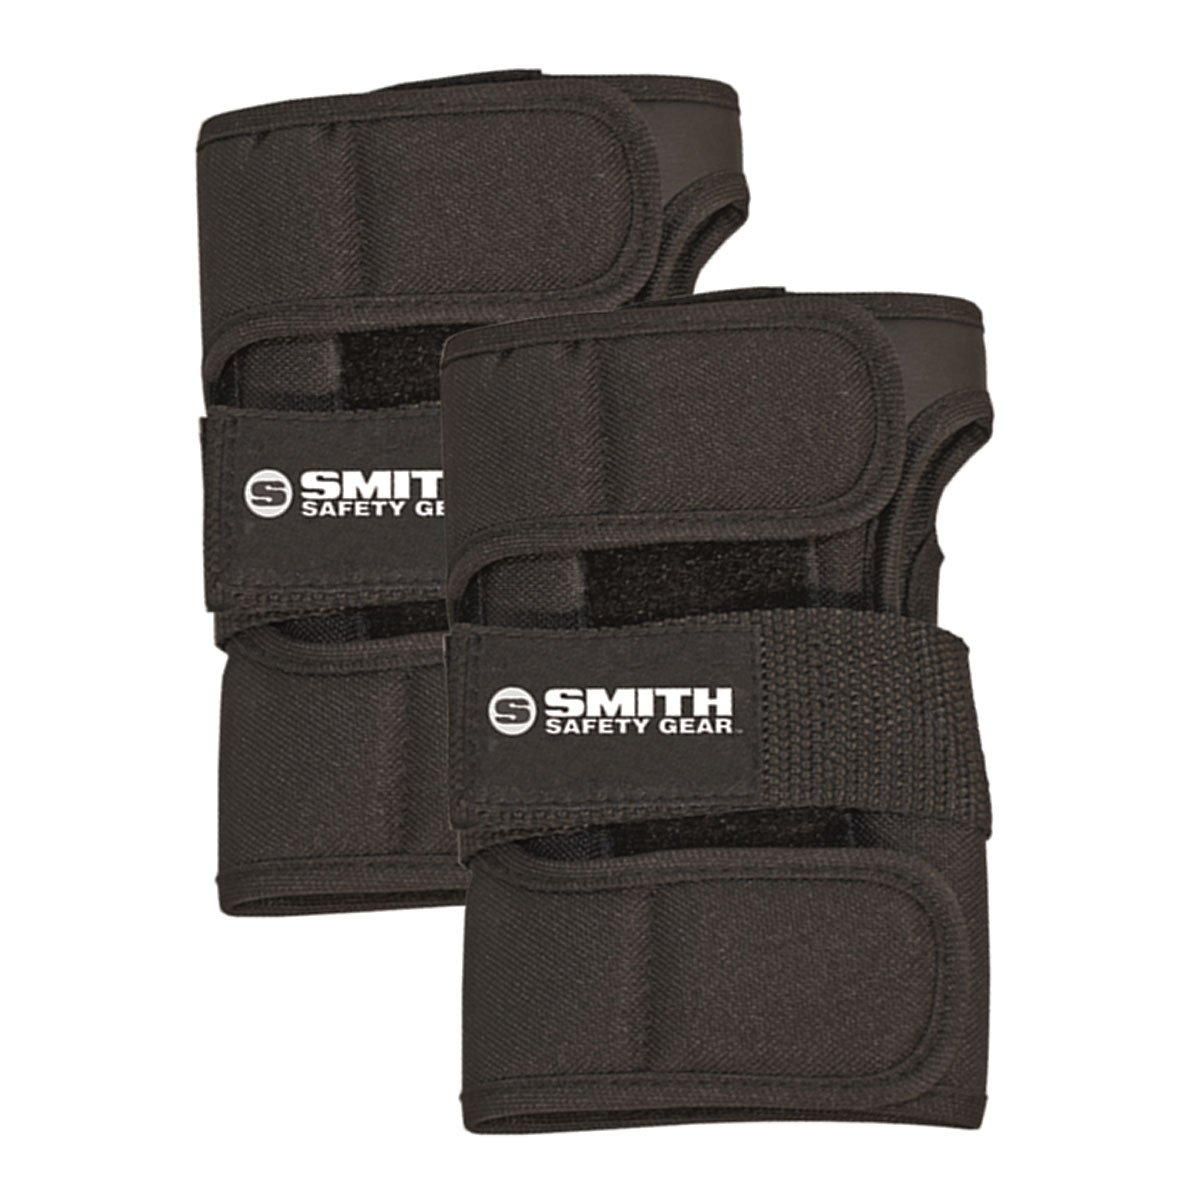 Smith Safety Gear Scabs Wrist Guards, Black, Small by Smith Safety Gear